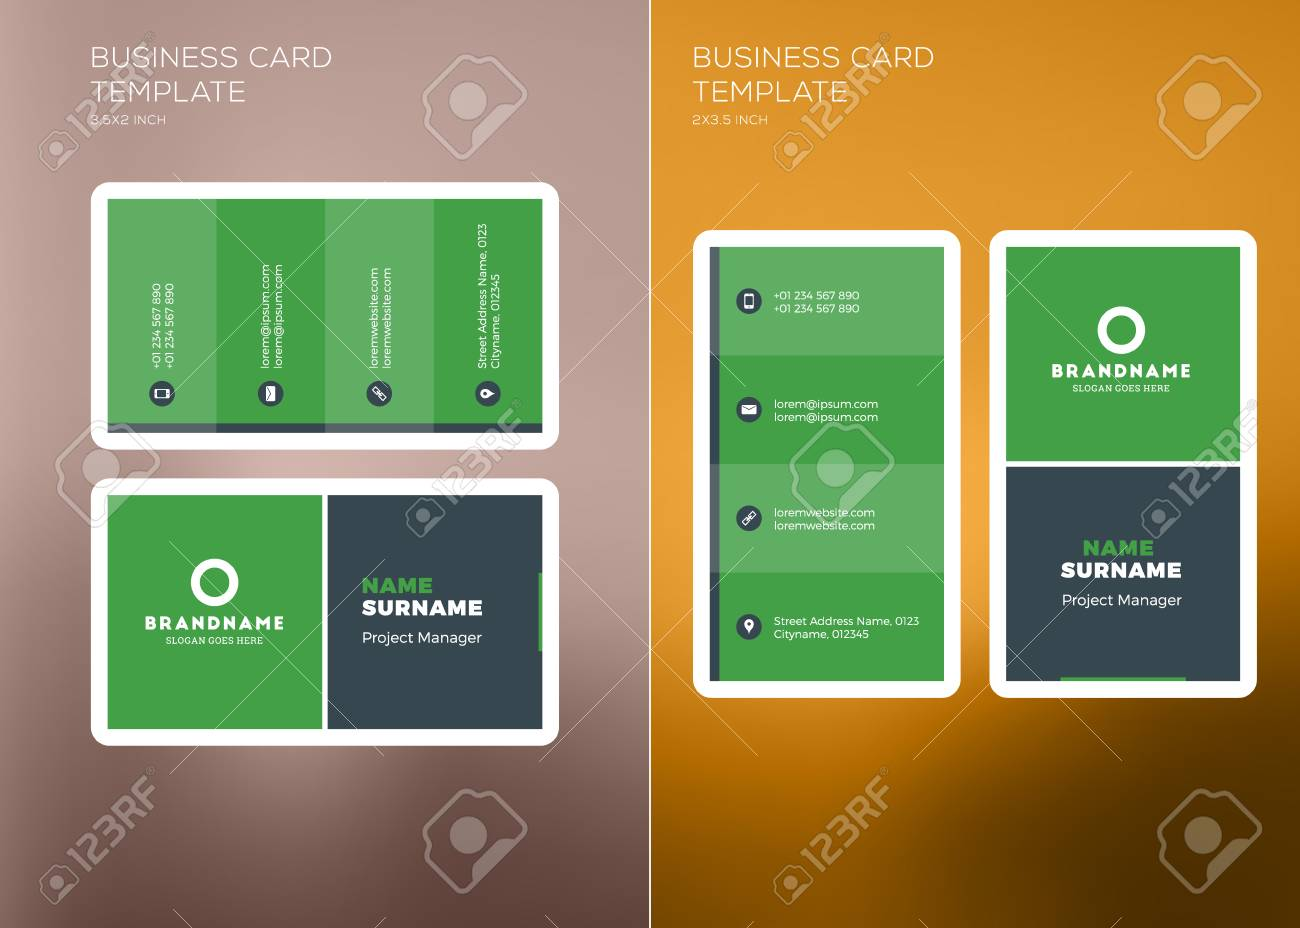 Corporate business card print template personal visiting card corporate business card print template personal visiting card with company logo vertical and horizontal friedricerecipe Image collections